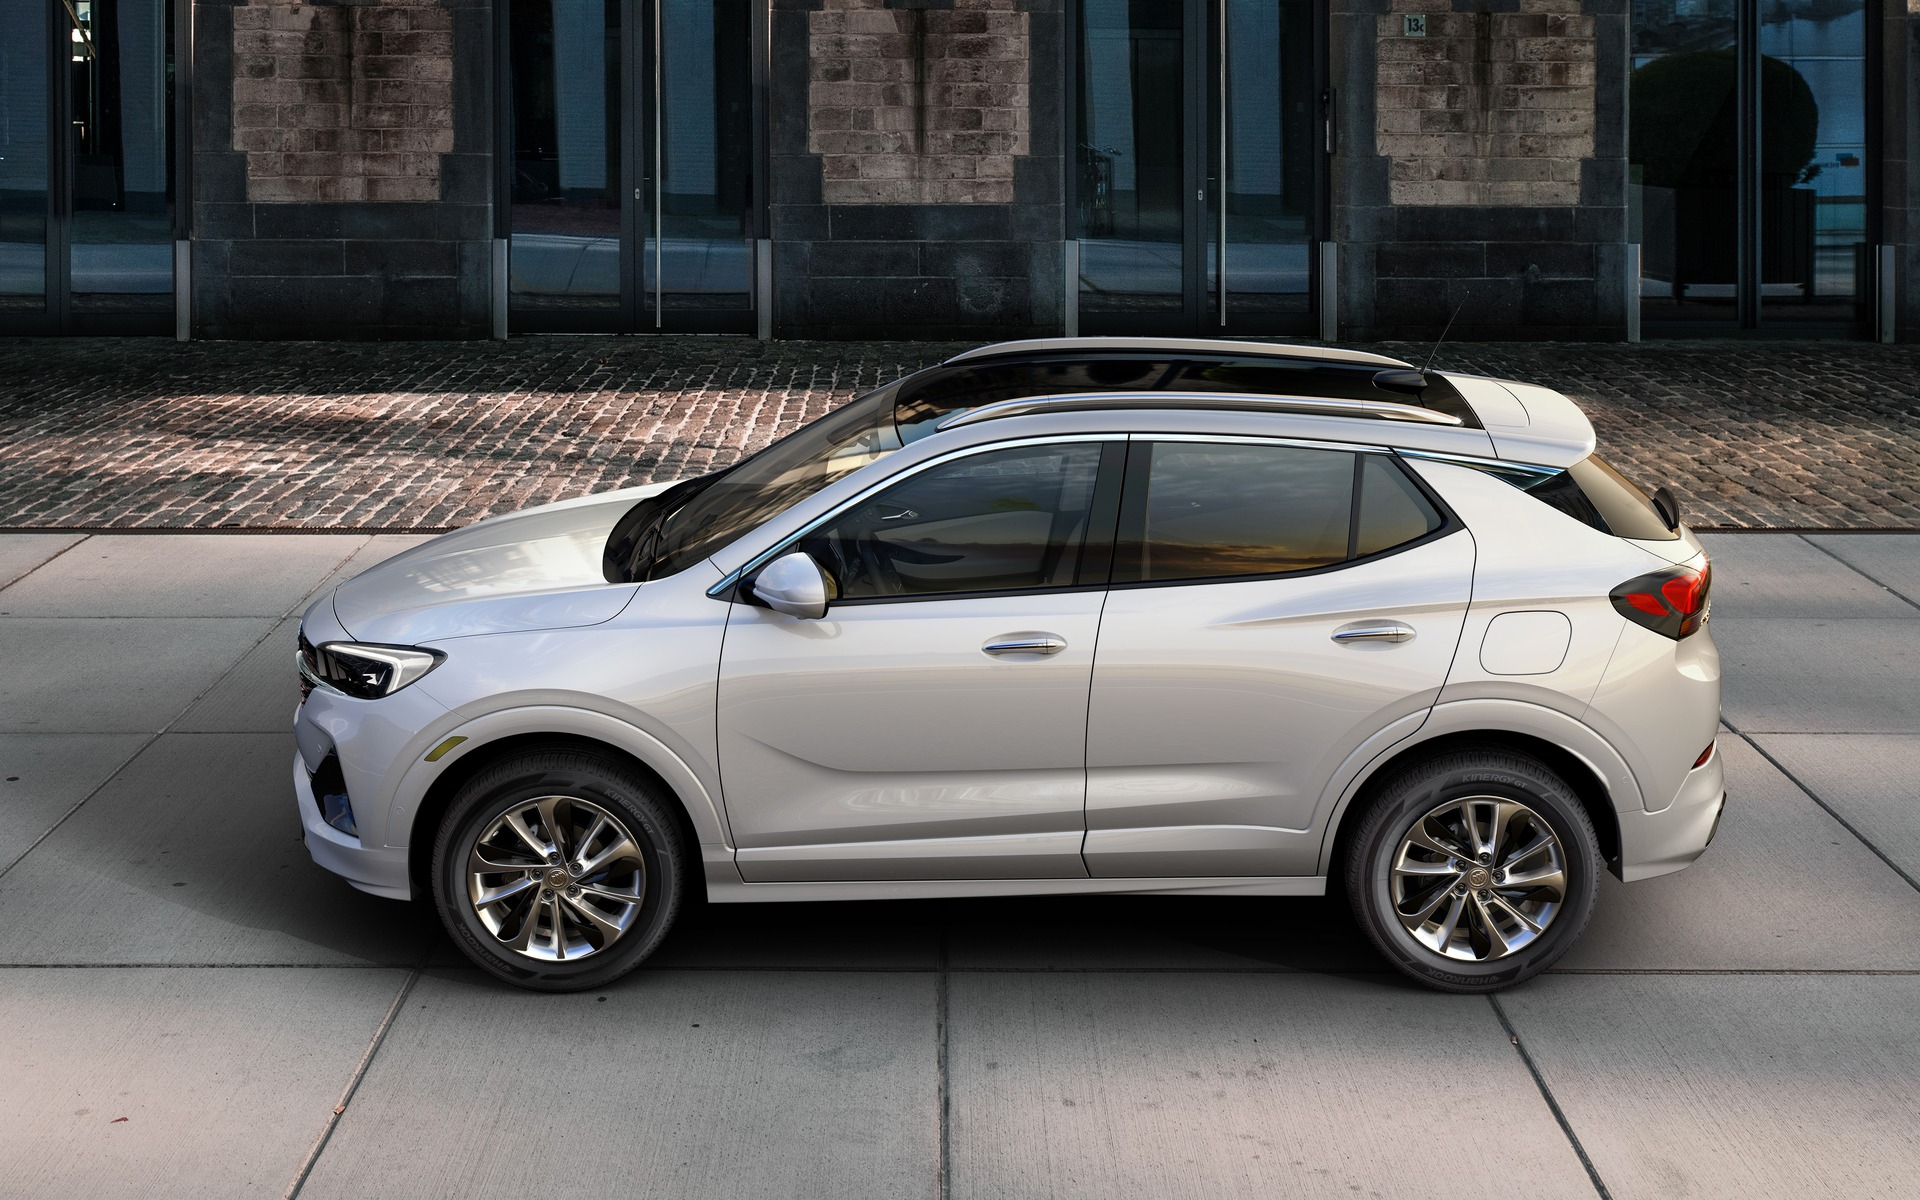 Buick Encore Gx To Offer A Pair Of Three-Cylinder Engines Where Is The New 2021 Buick Encore Gx Built